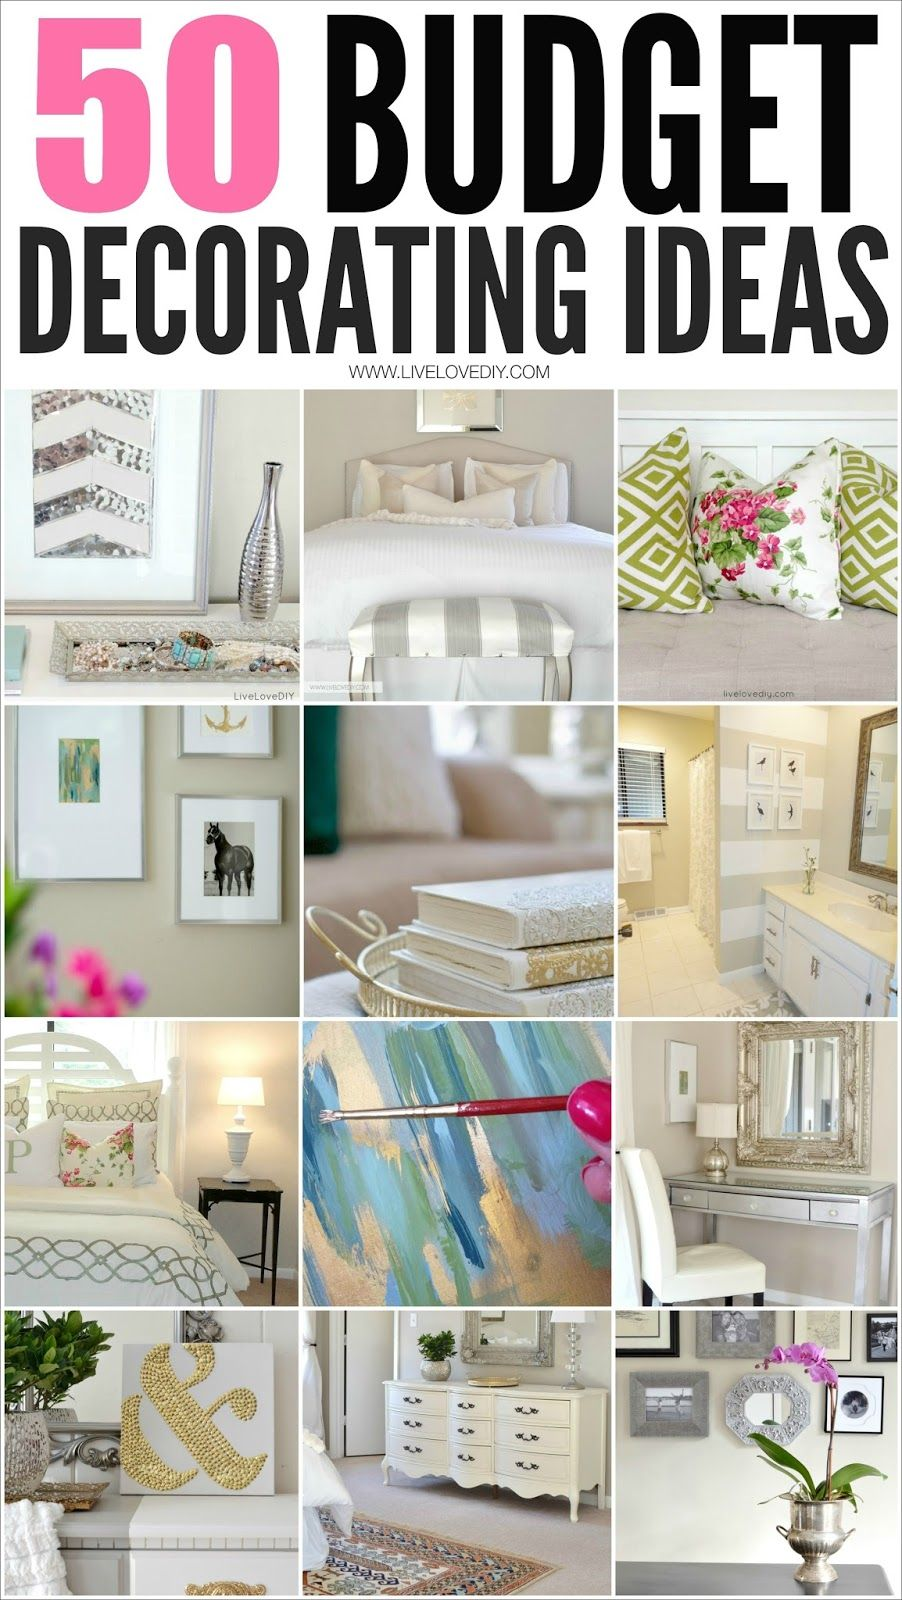 50 Budget Decorating Tips You Should Know LiveLoveDIY home